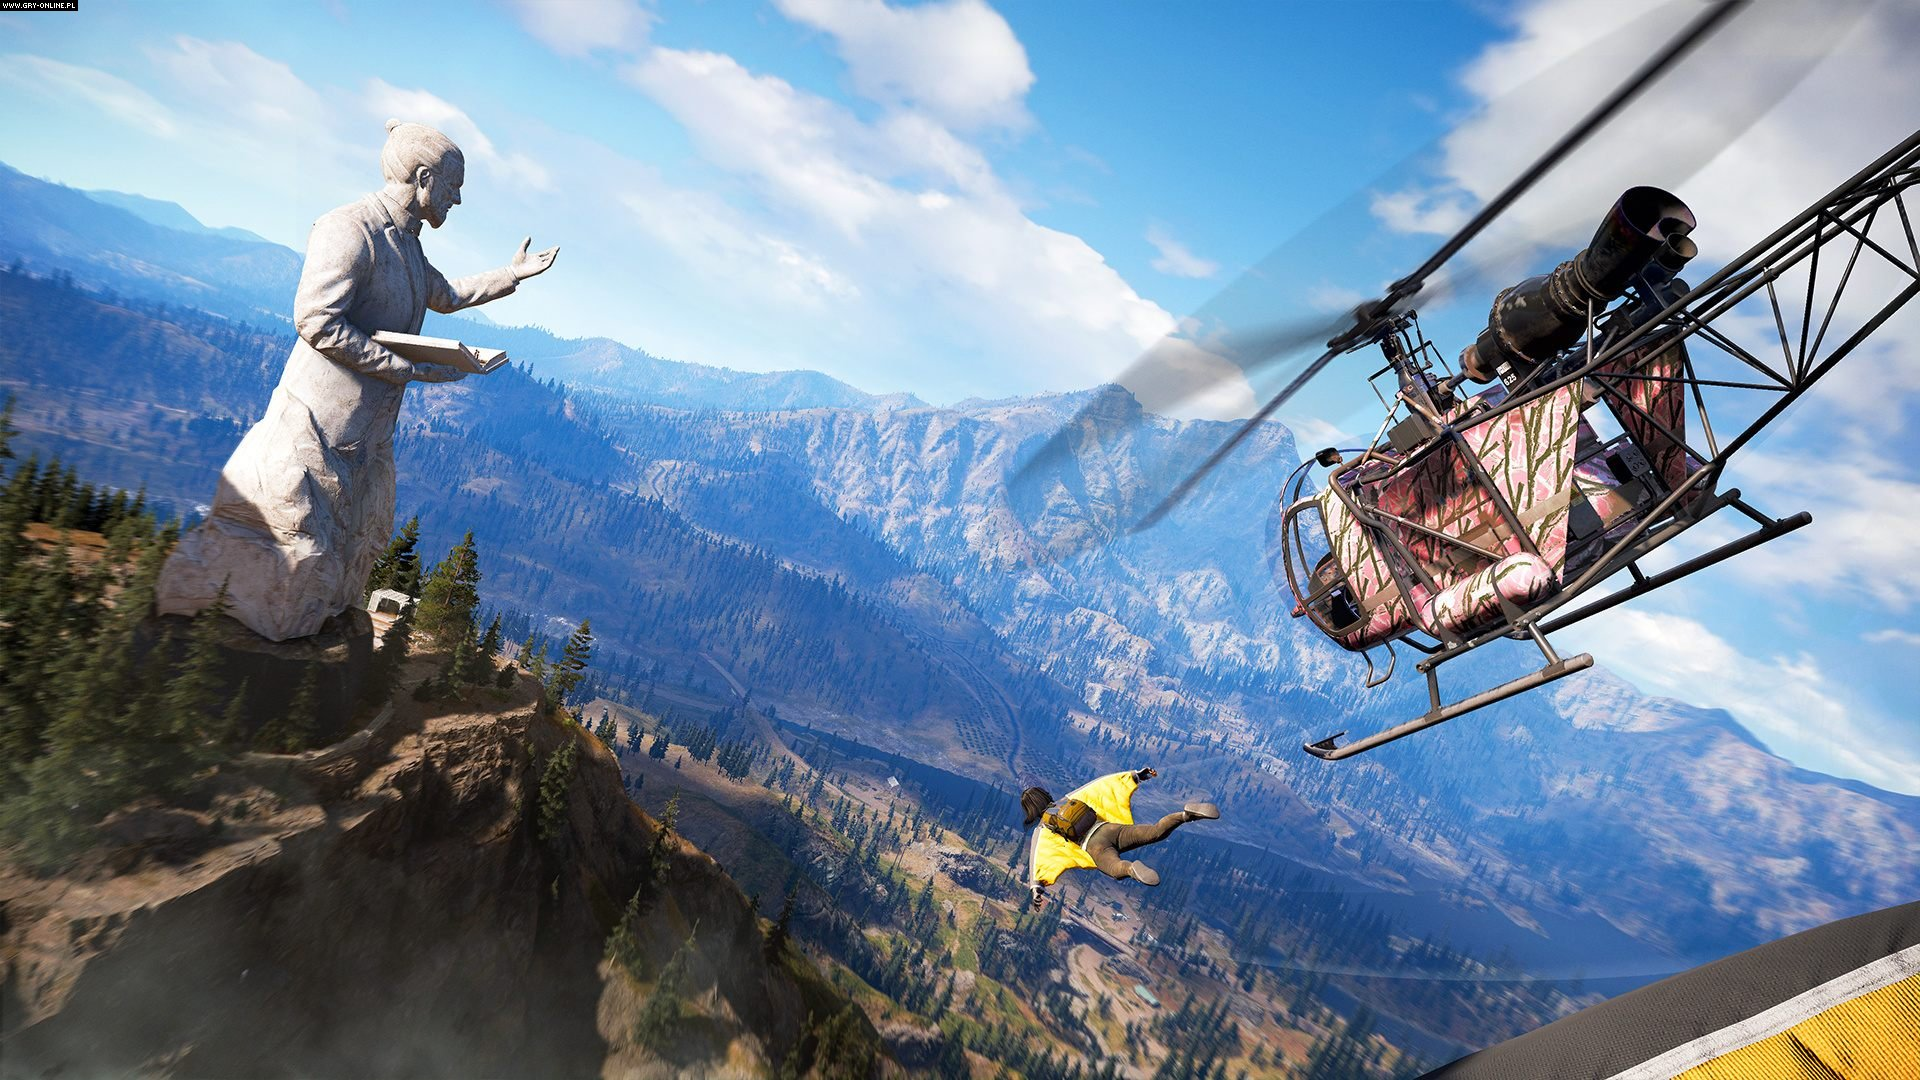 Far Cry 5 PC, PS4, XONE Gry Screen 1/38, Ubisoft